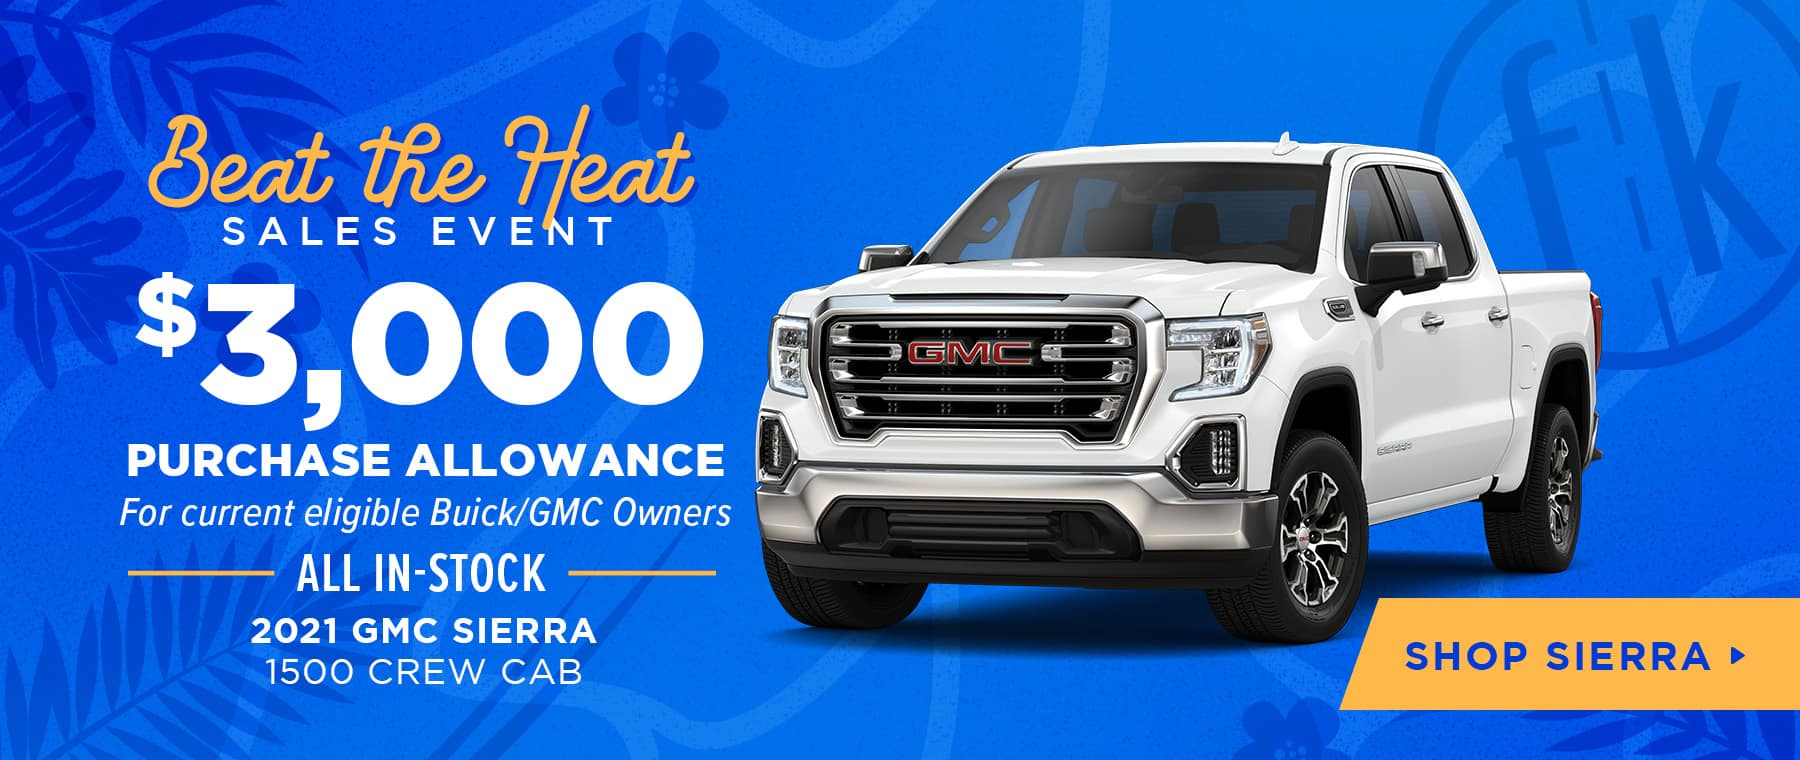 $3,000 Purchase Allowance For Current Eligible Buick/GMC Owners All In-Stock 2021 GMC Sierra 1500 Crew Cab